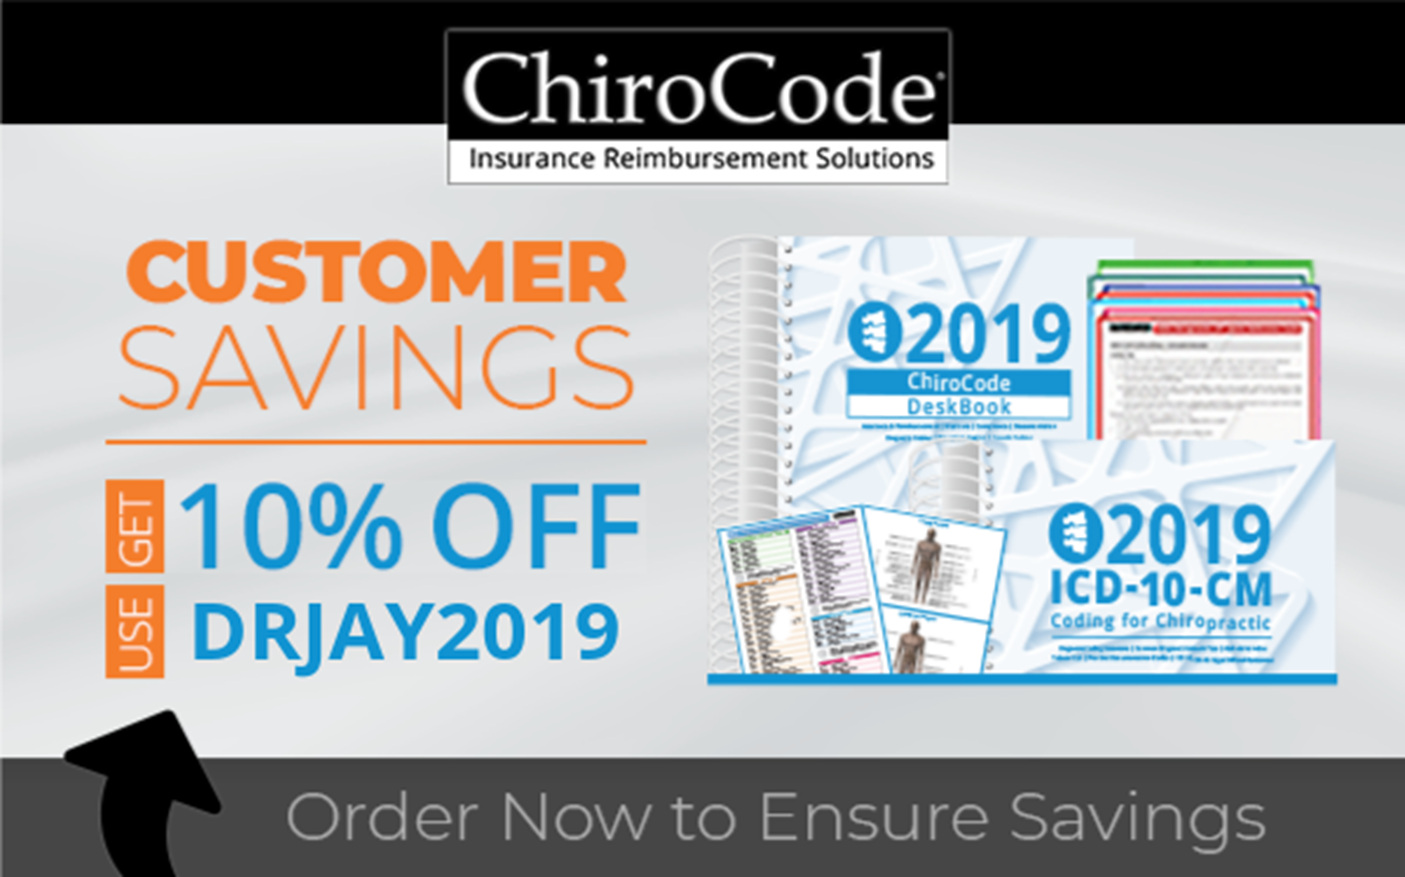 ChiroCode takes care of its Chiropractors by  simplifying the code selection process. Use these resources to understand how to work with your patients and their insurance. Maximize your reimbursement with proper billing, and avoid penalties when audits come by presenting thorough documentation. Use the promotion code drjay2019 to receive 10% off your purchase!